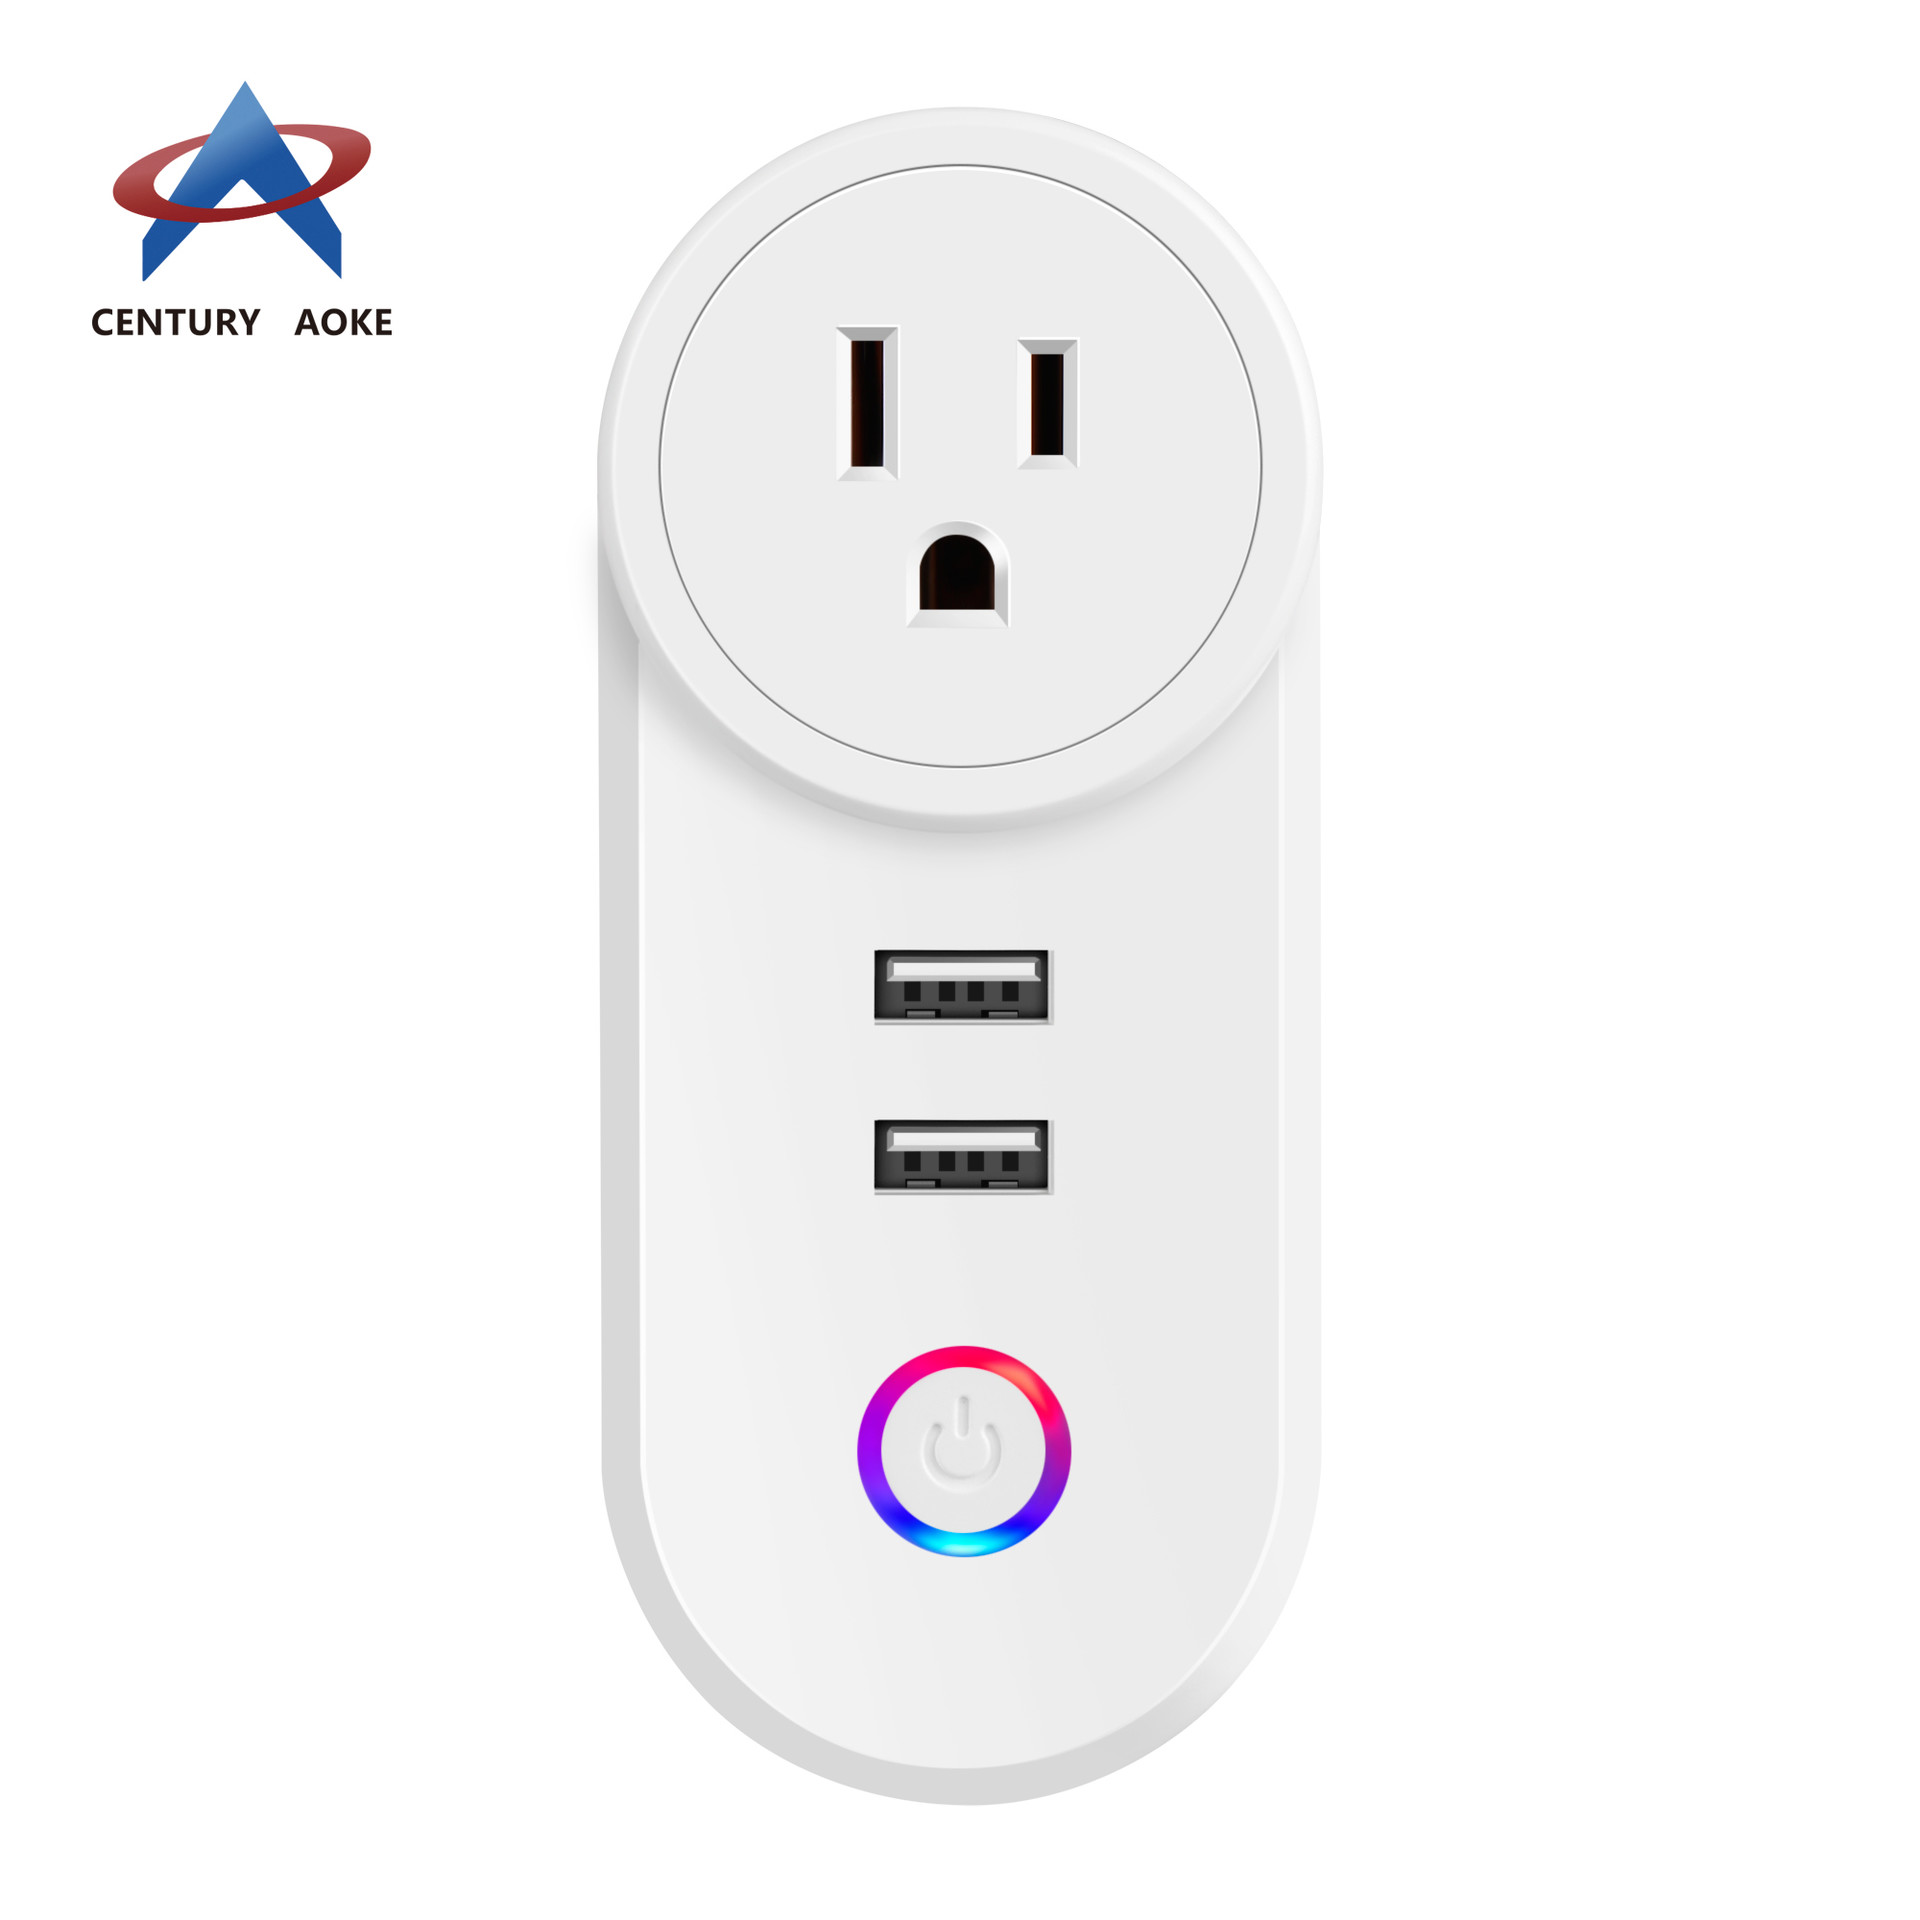 US smart socket best smart outlet AK-P21W-04F